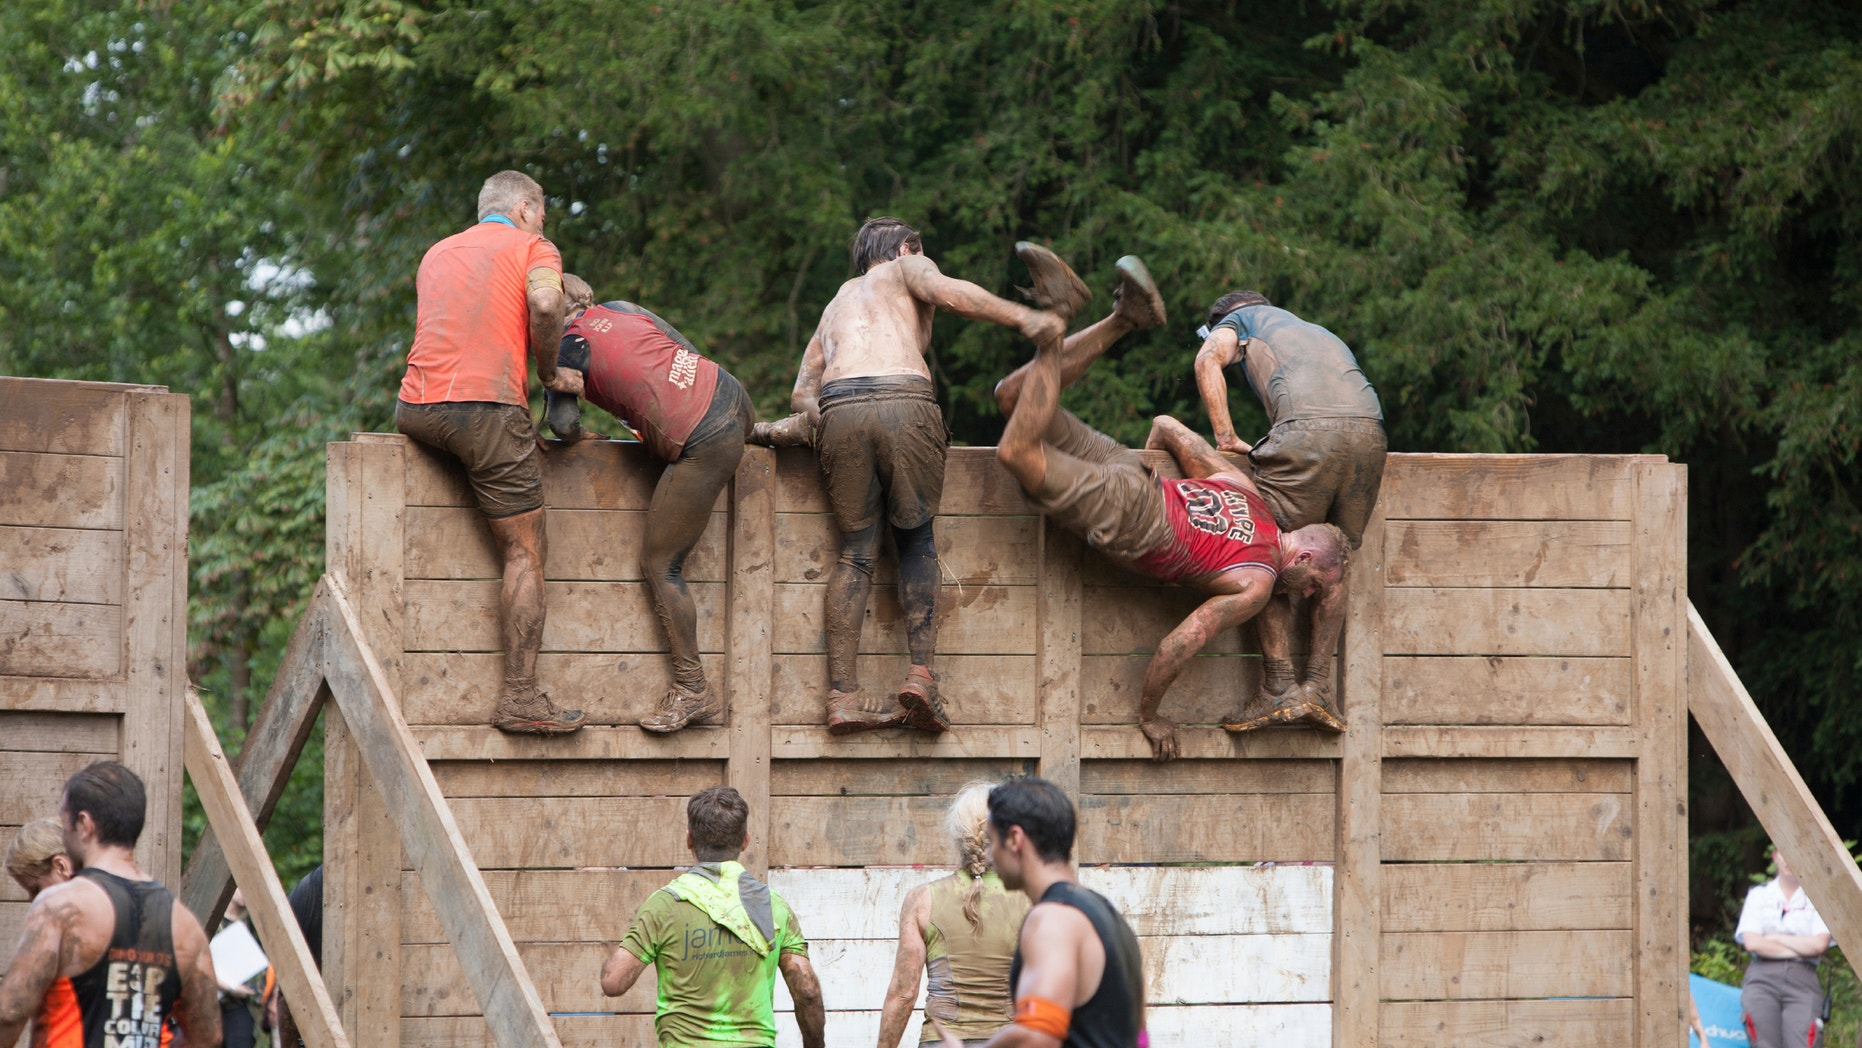 A group of people help each other tackle a high wooden barrier on their gruelling 12 mile assault course during the 'Tough Mudder' challenge in Cirencester park, Gloucestershire. This annual event is a team-based 10-12 mile obstacle course designed to test physical strength endurance.